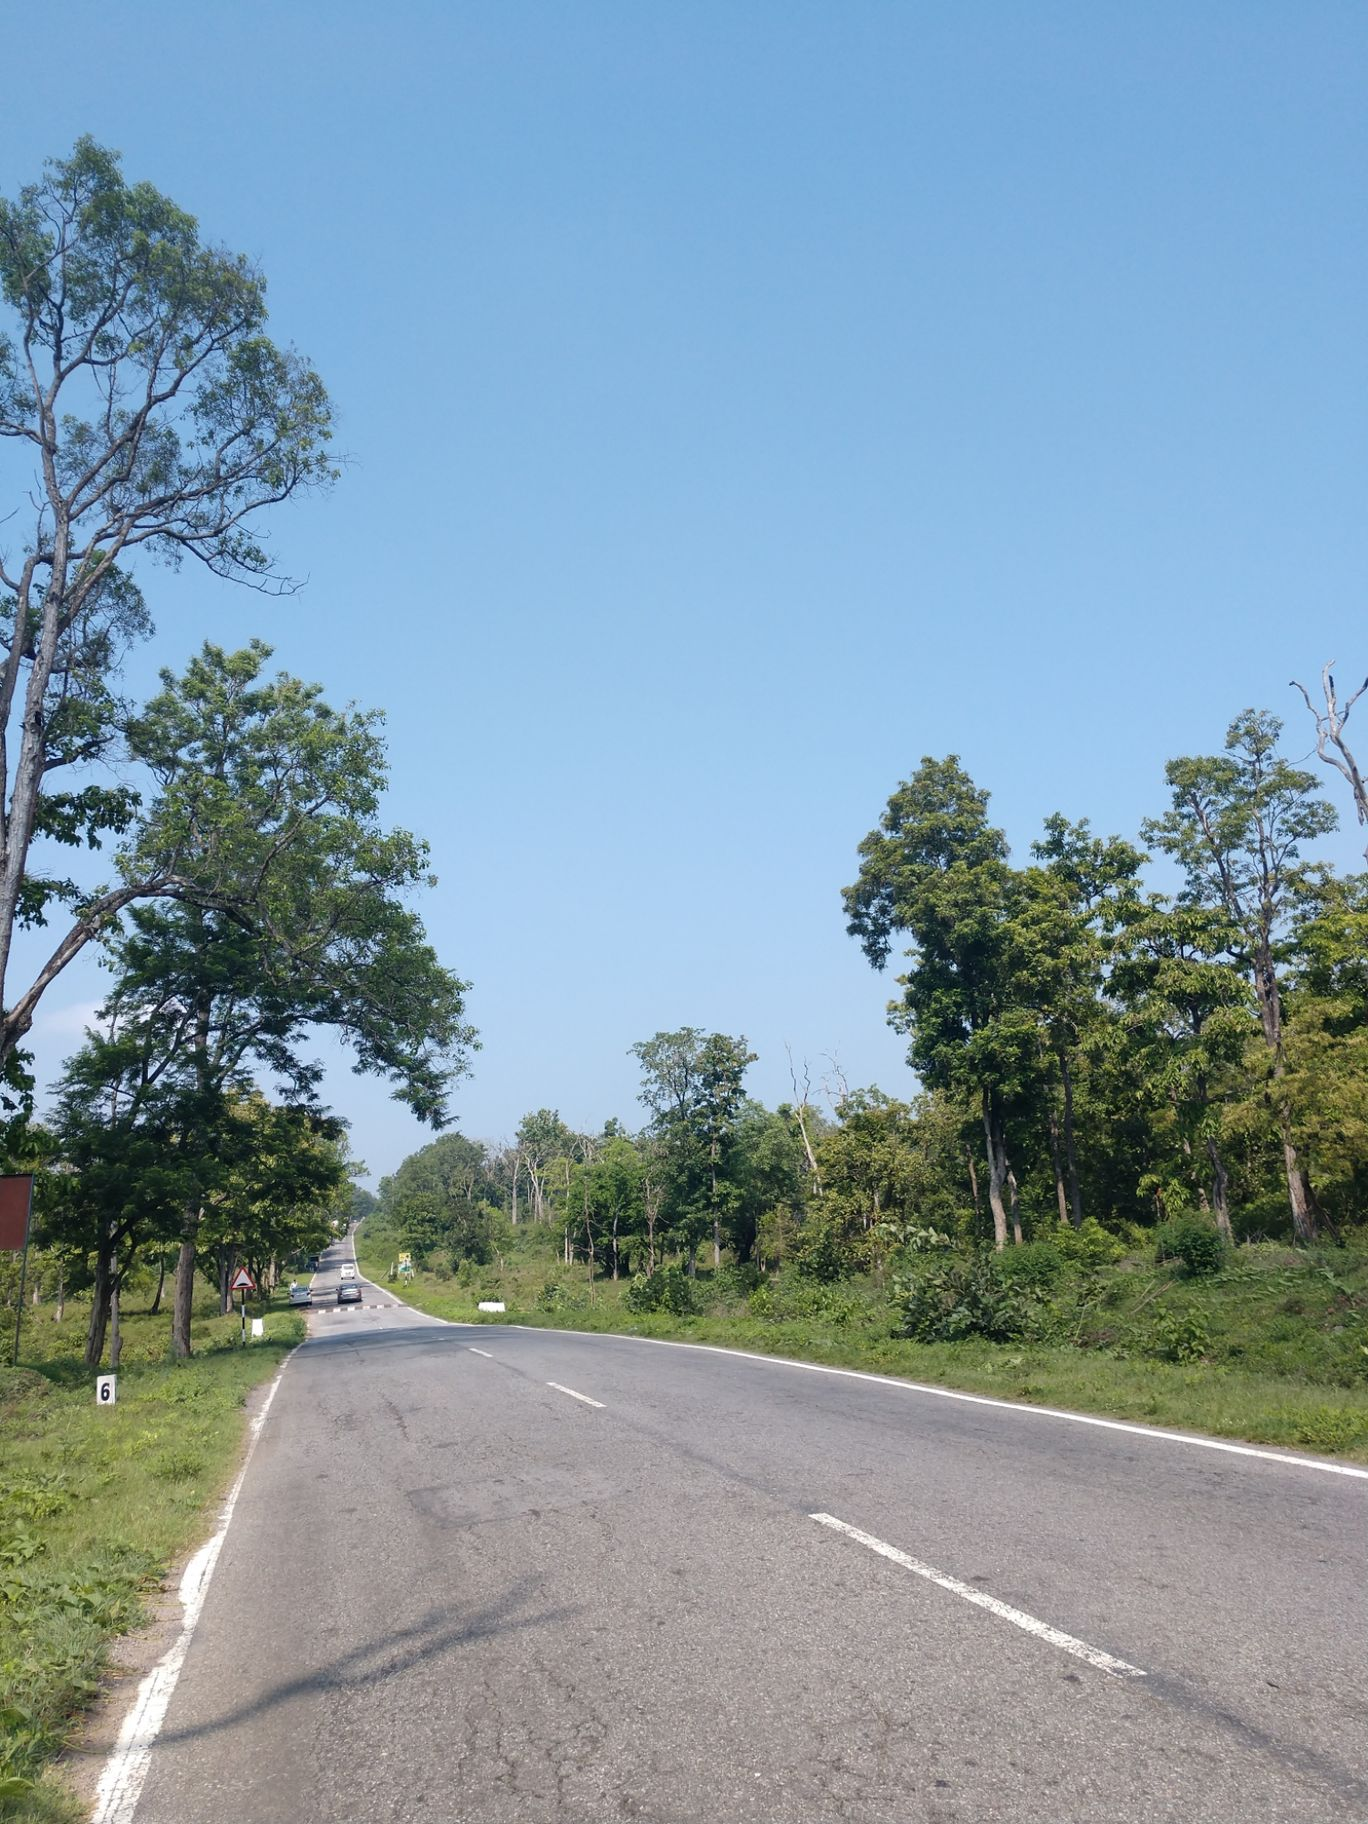 Photo of Nagarhole National Park And Tiger Reserve By Techn0